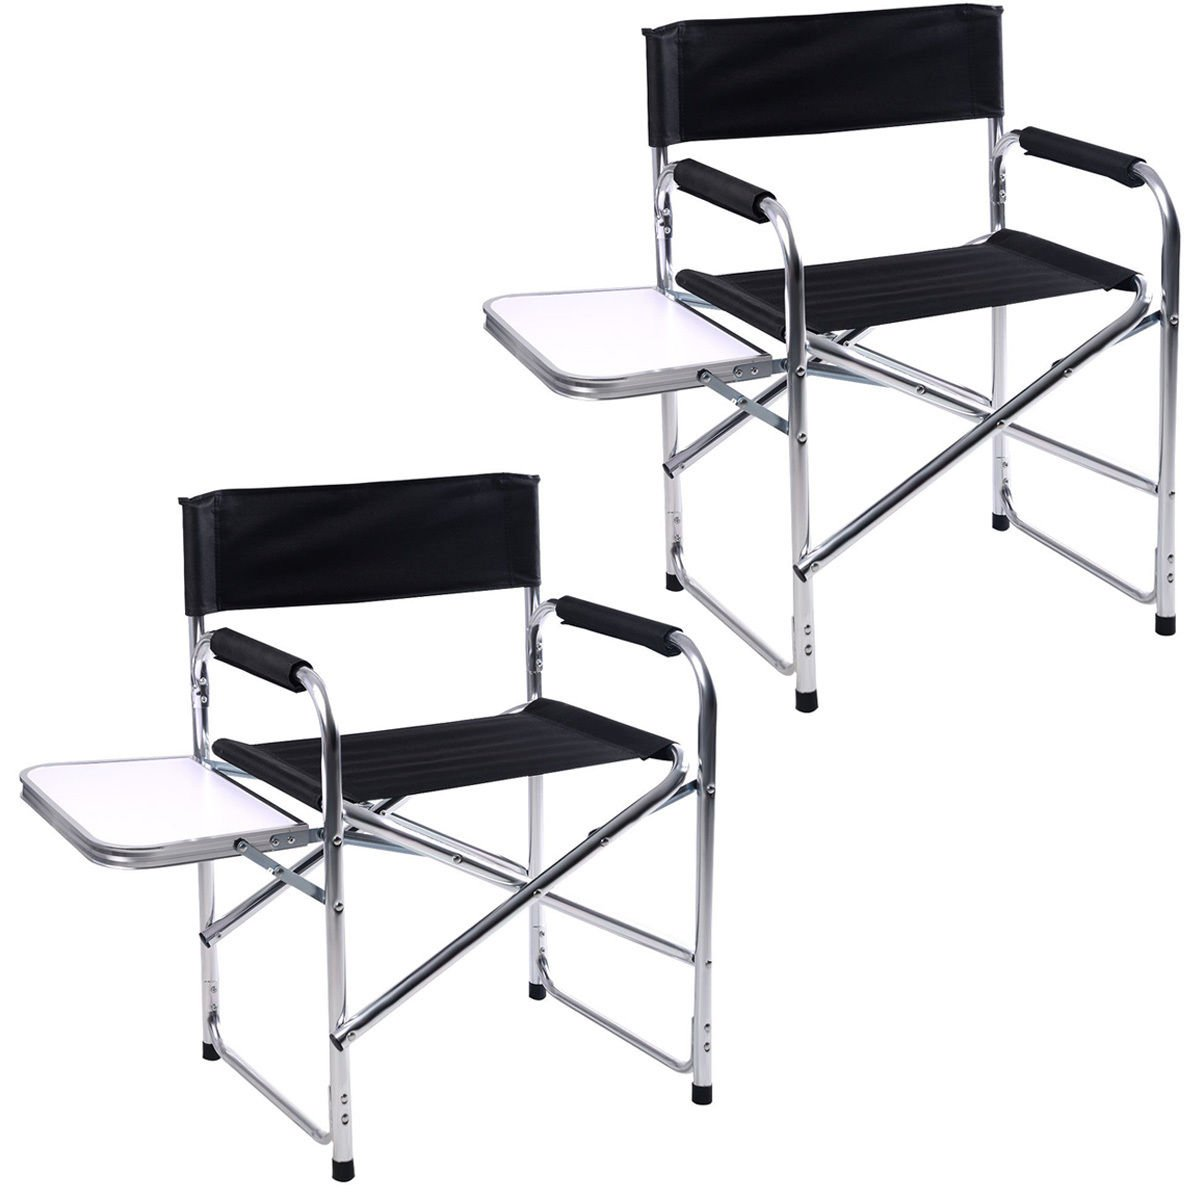 New 2PC Aluminum Folding Director's Chair with Side Table Camping Traveling